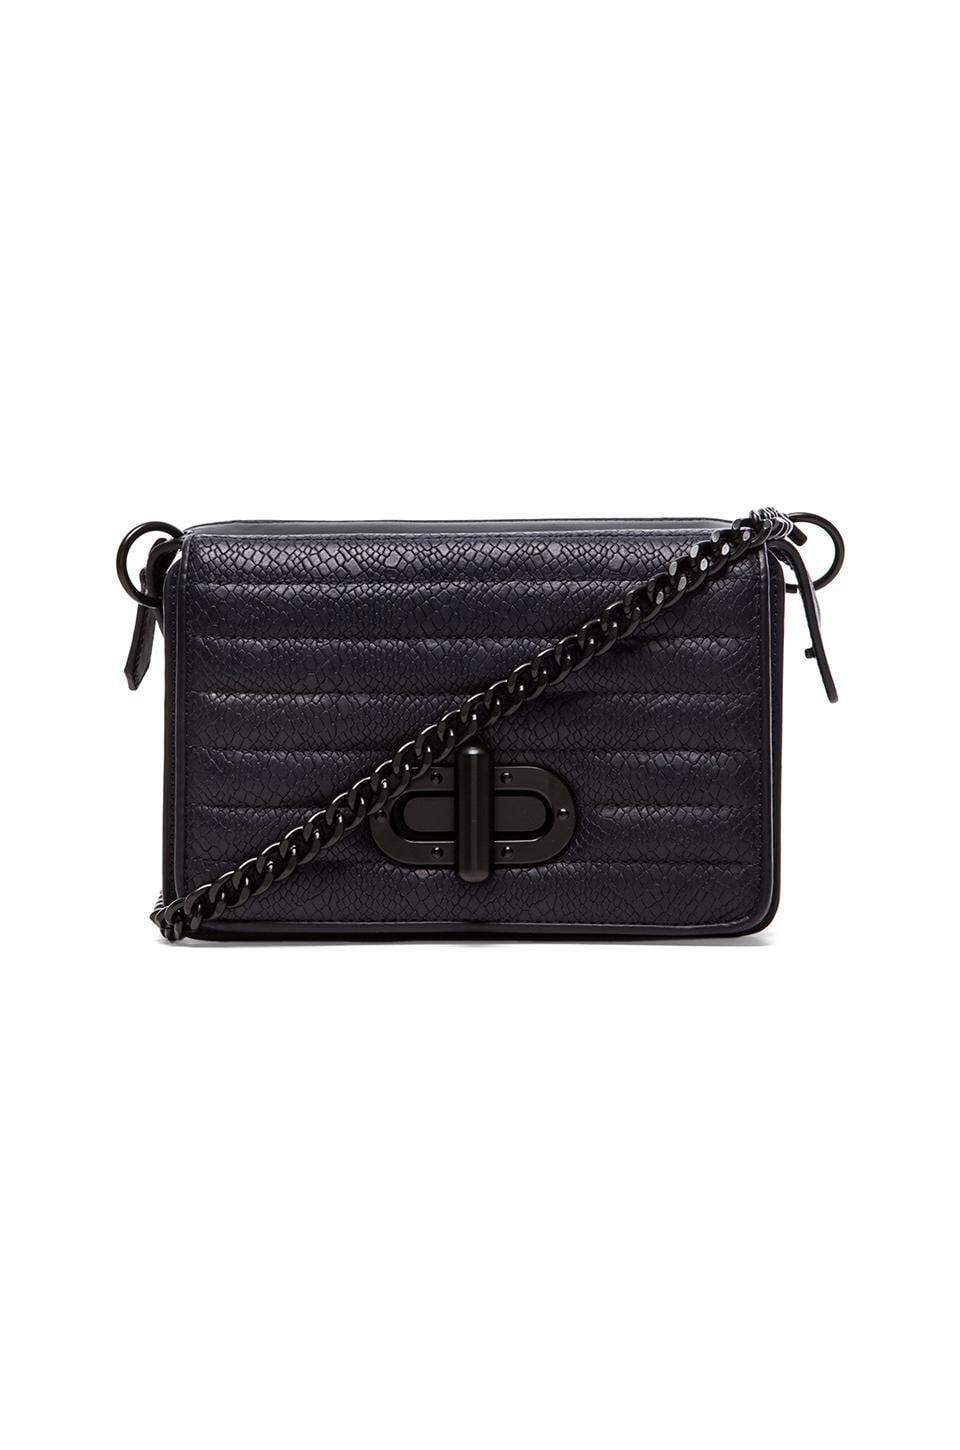 Lamb Esta Crossbody in Midnight